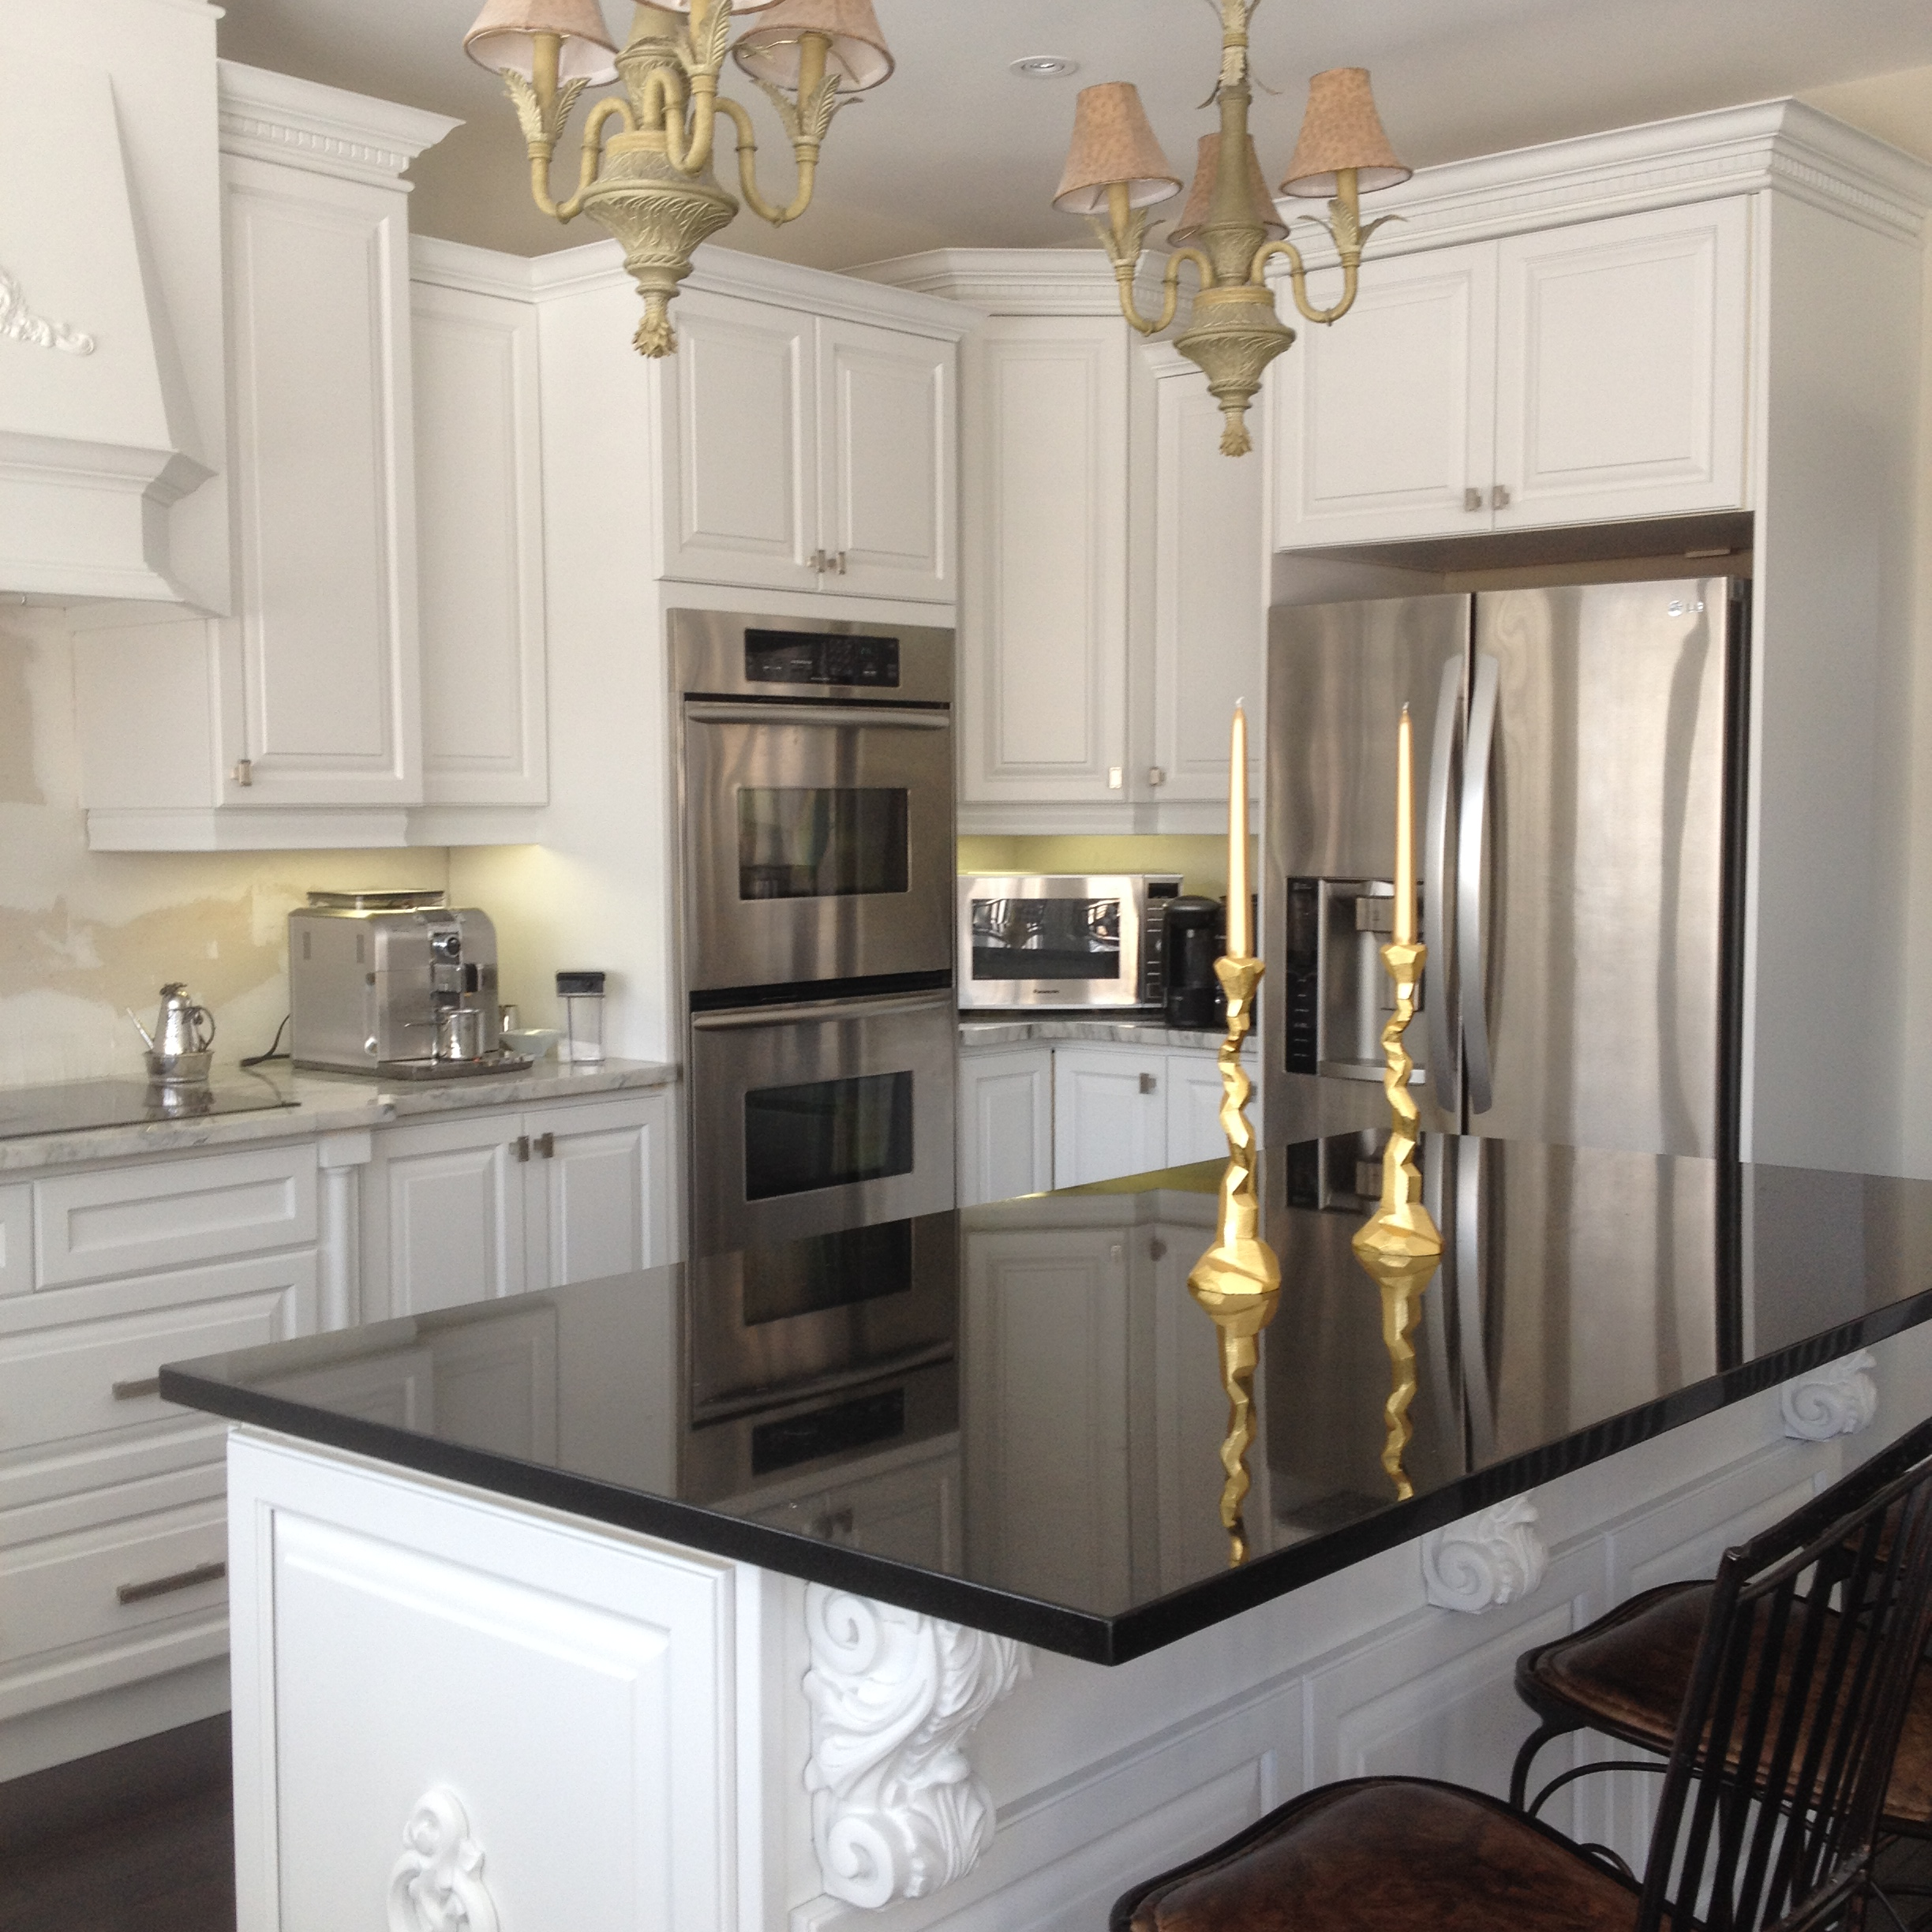 Kitchen Cabinet Spray Paint Spray Painted Kitchen Cabinets Done In Sherwin Williams